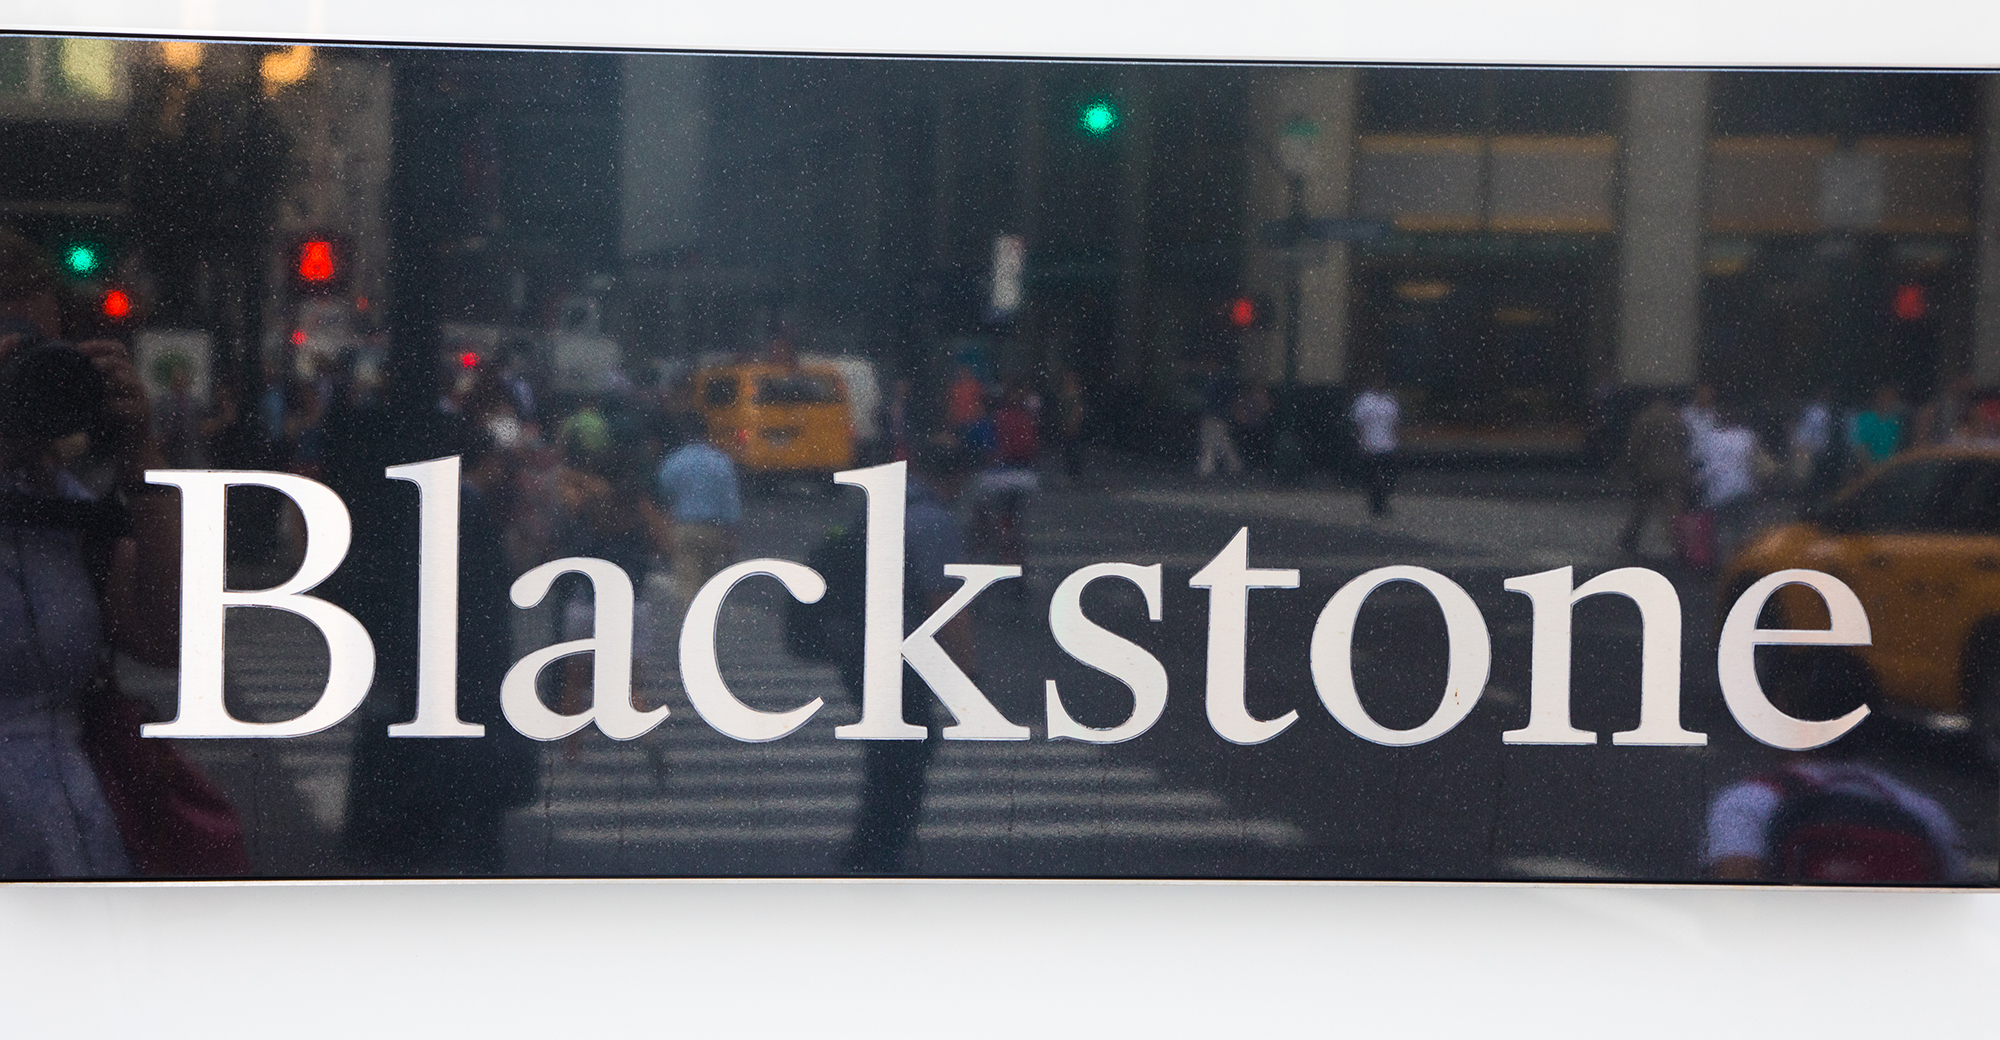 Blackstone to Shutter Real Estate Income Fund That Held CMBS thumbnail